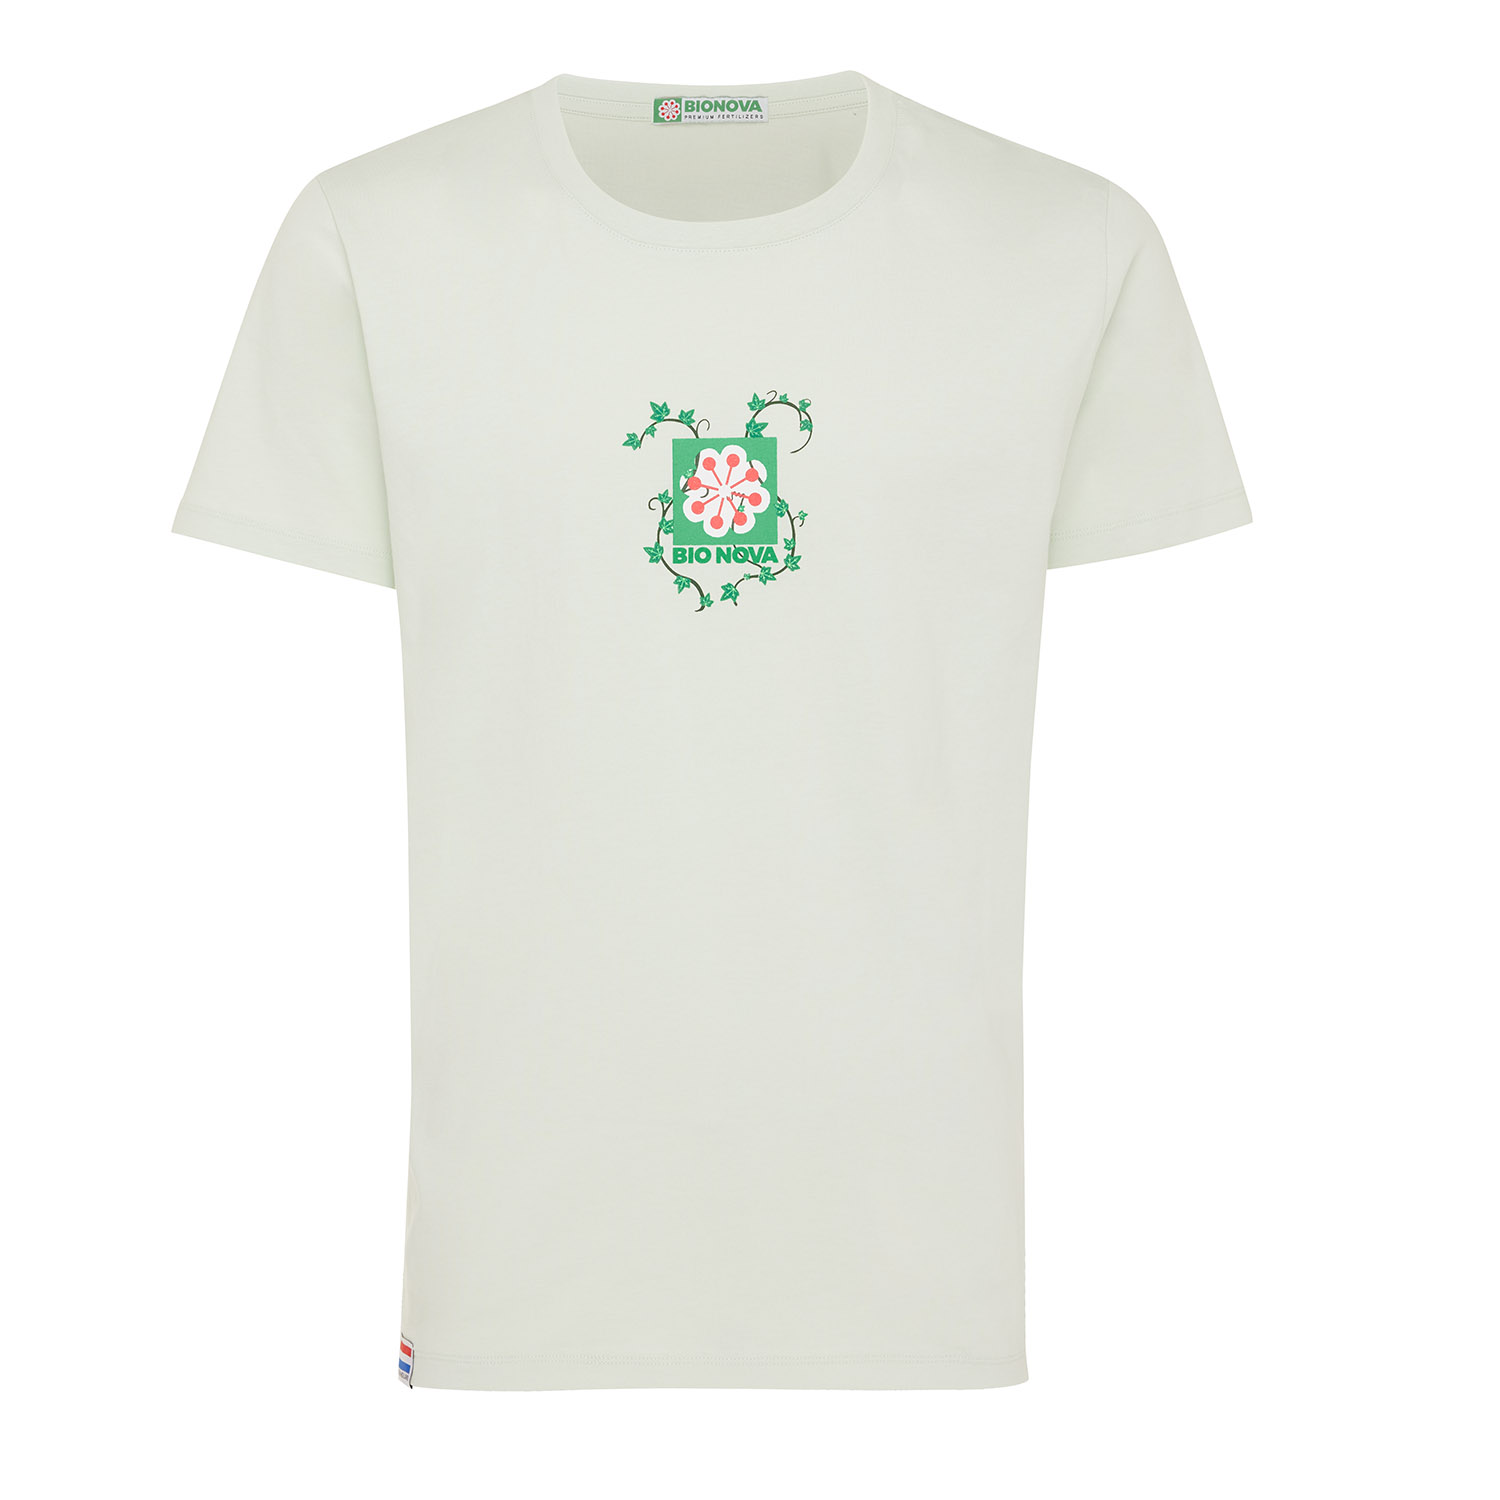 Bionova T-shirt | Light green